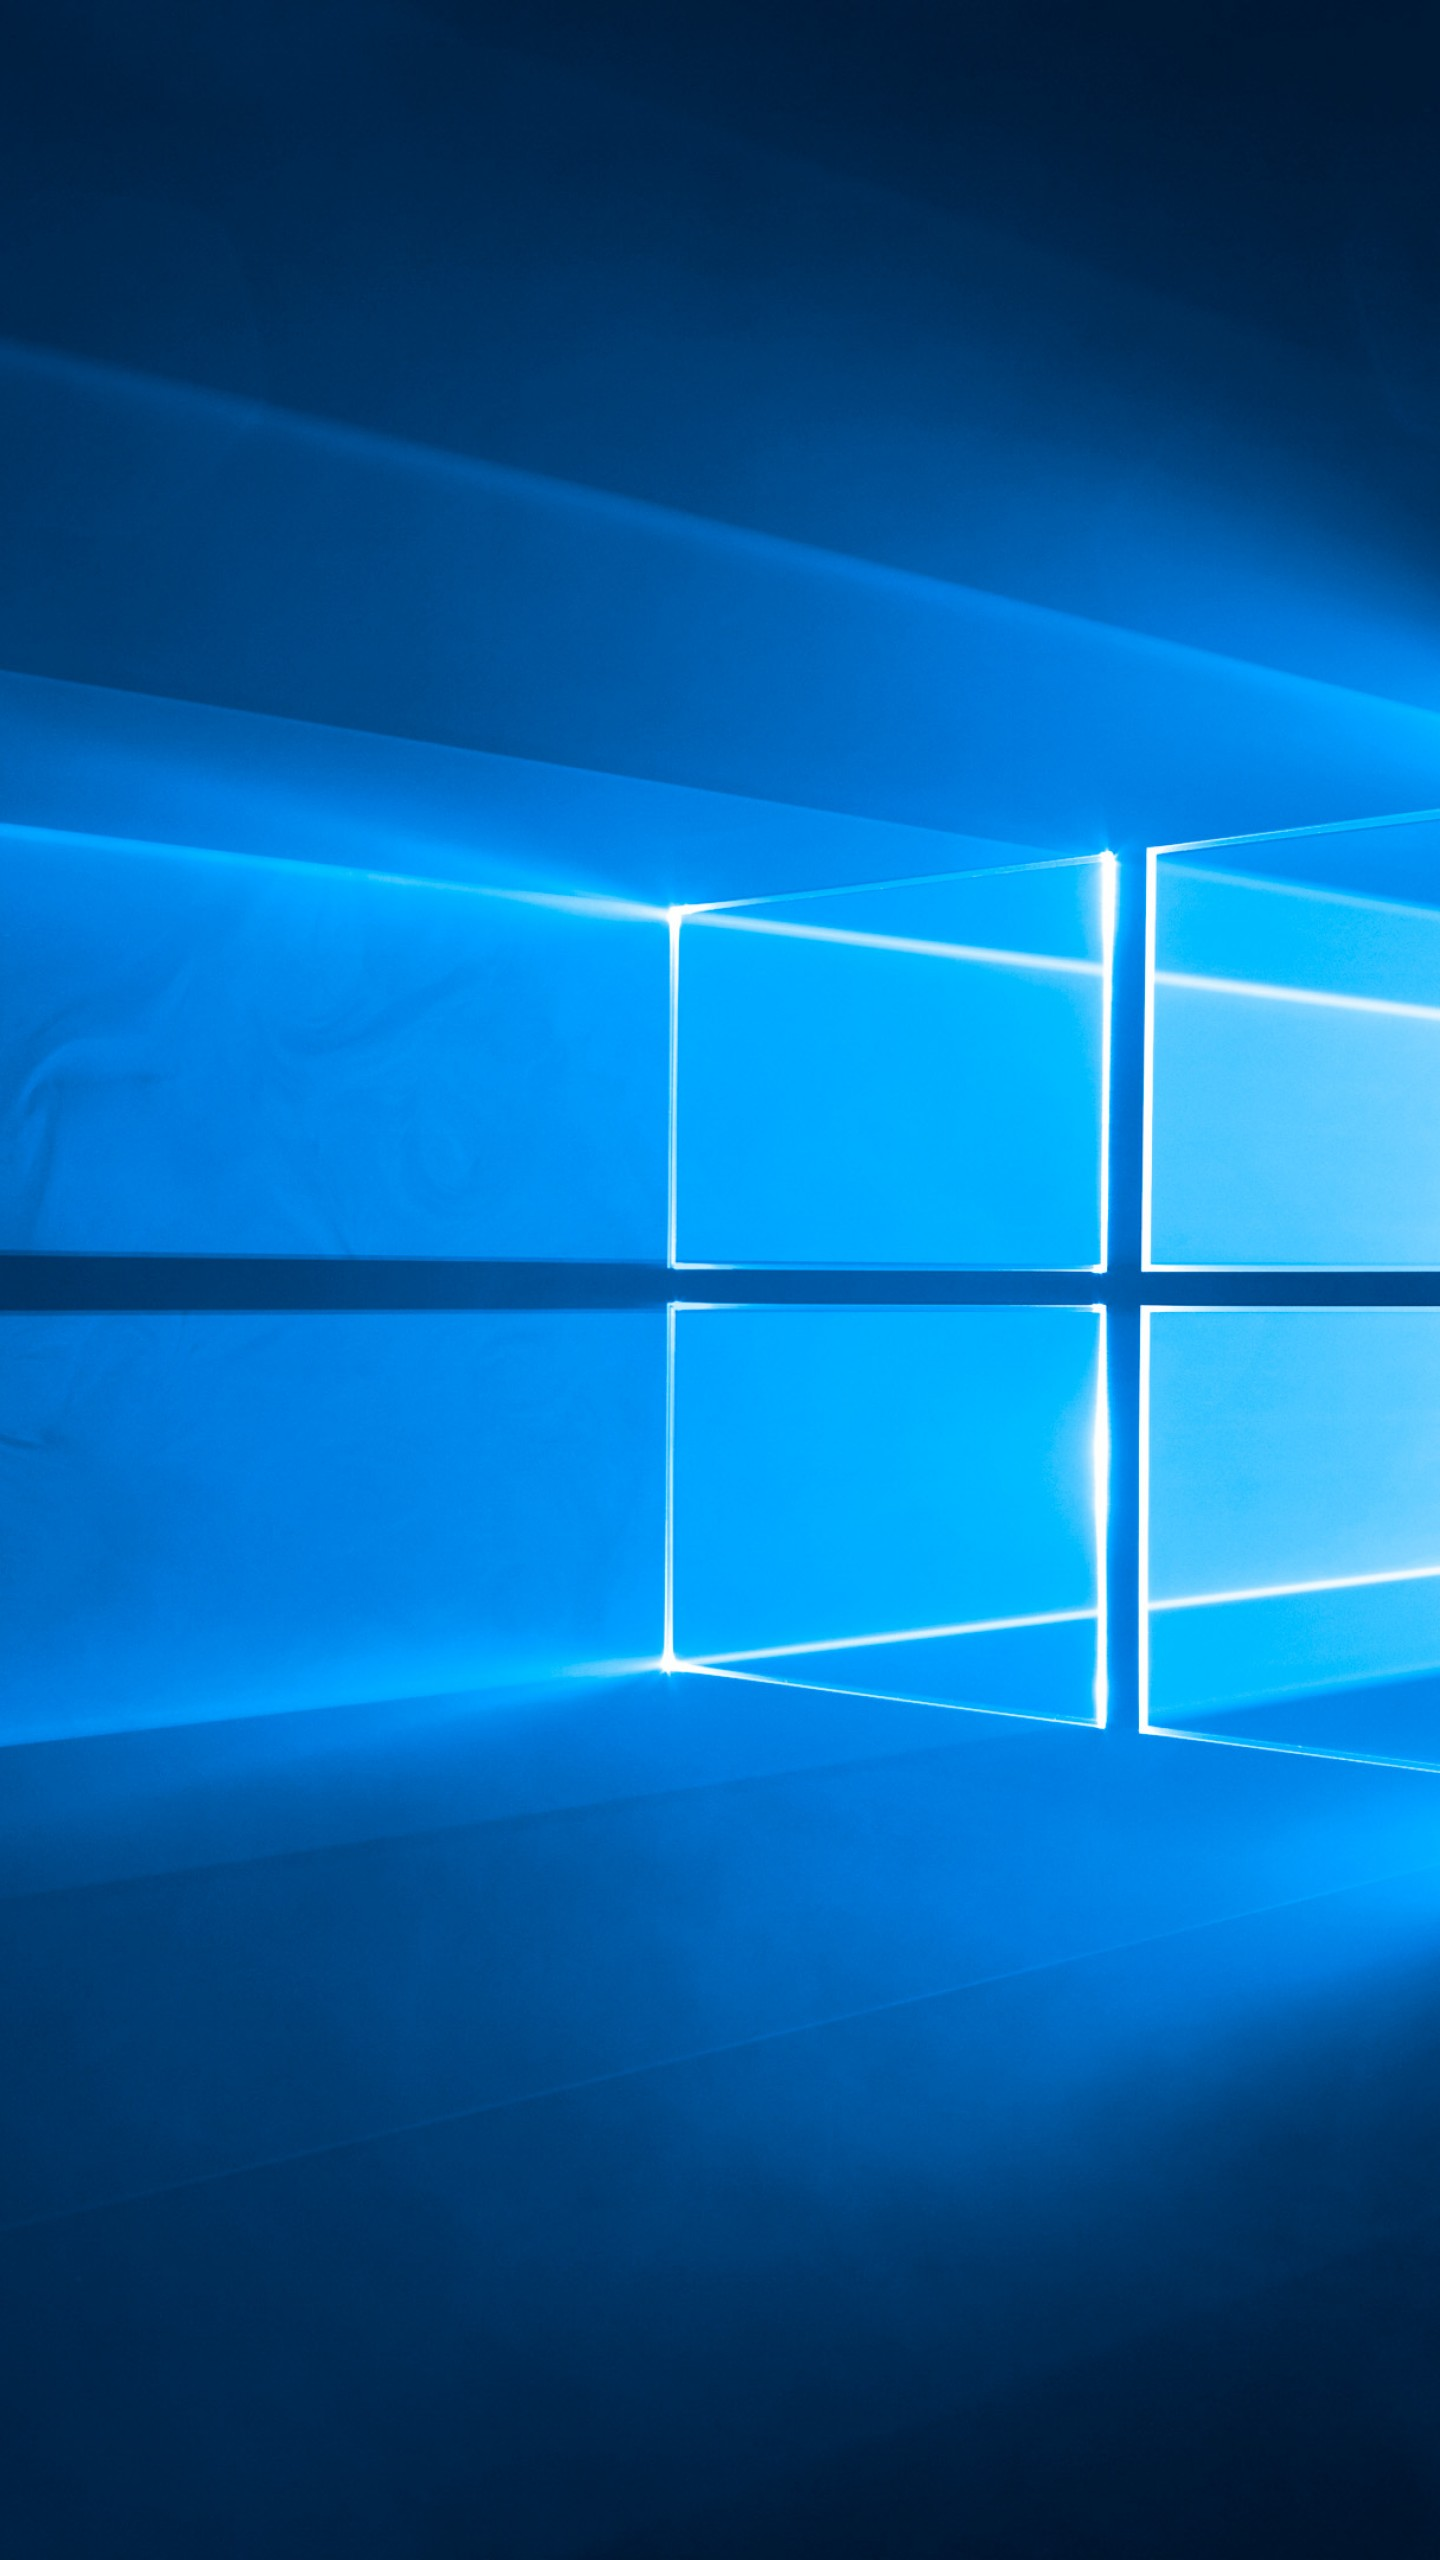 Wallpaper Windows 10 4k 5k Wallpaper Microsoft Blue Os 6992